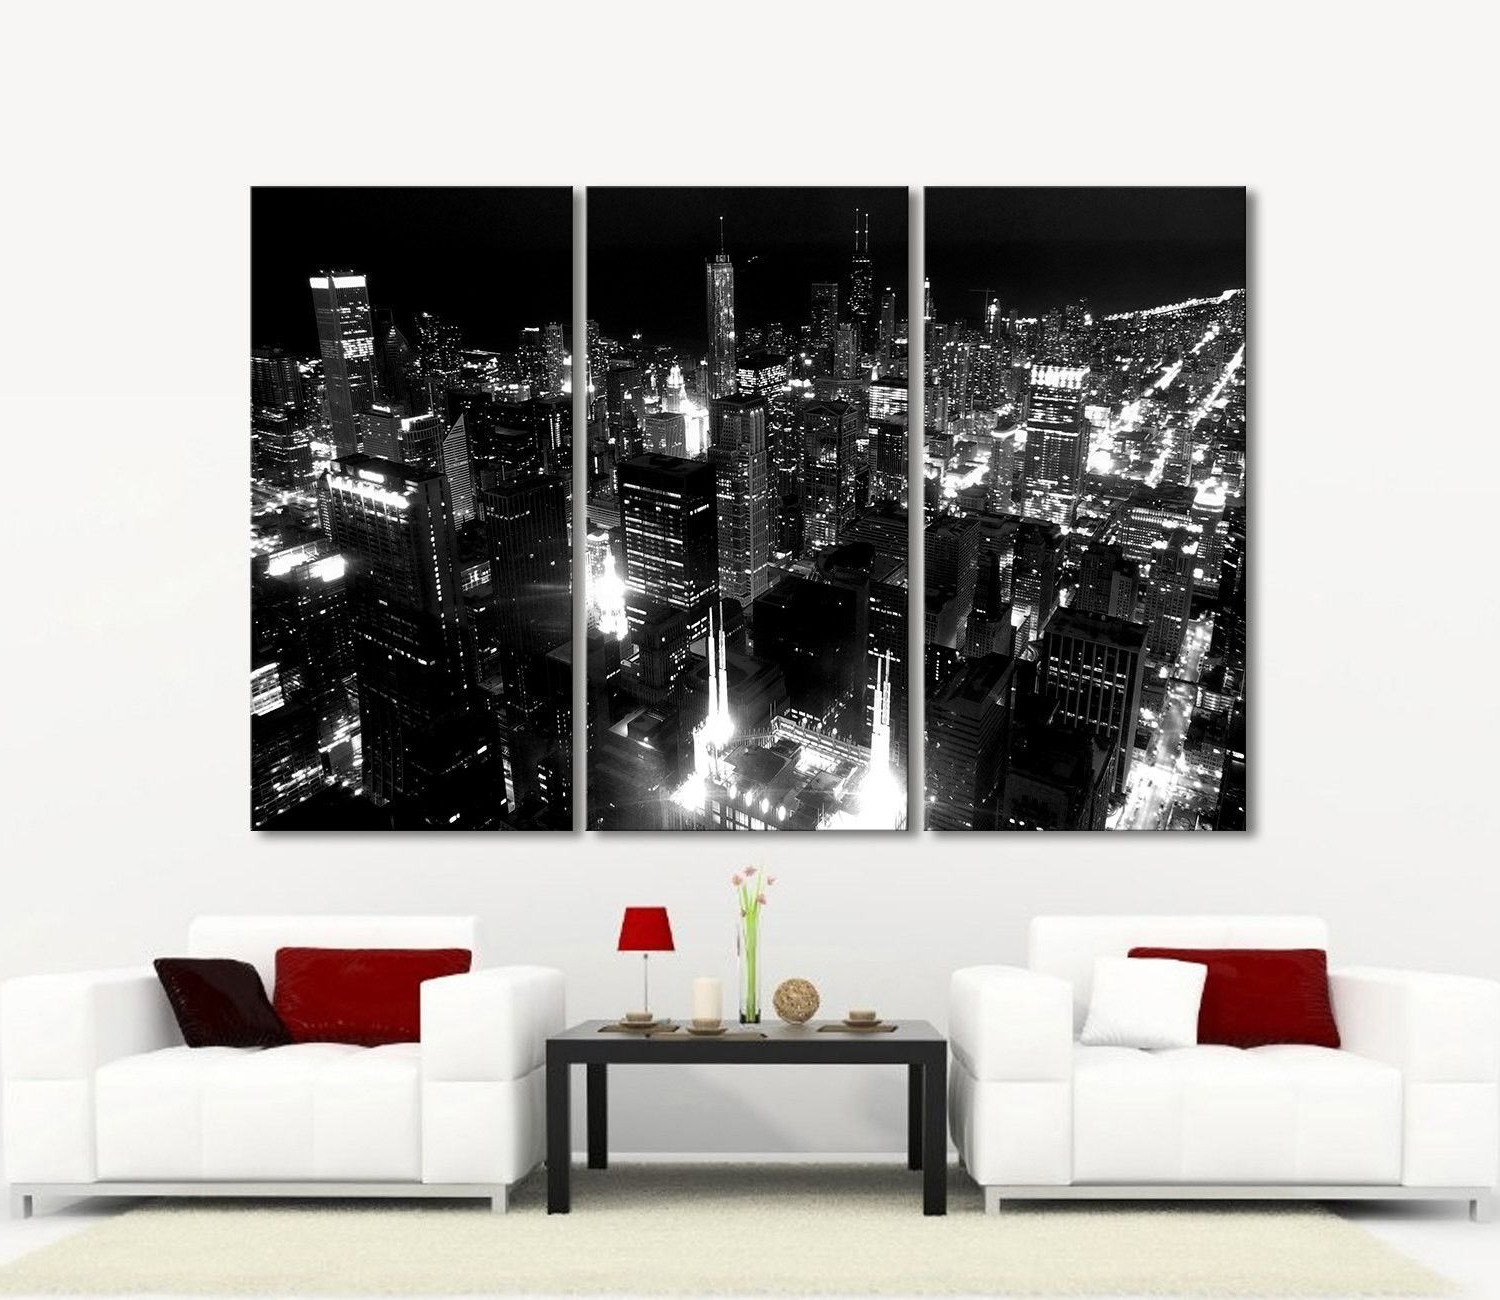 Widely Used Large Wall Art Canvas Print Chicago City Skyline At Night – 3 Panel Intended For Chicago Wall Art (Gallery 9 of 15)